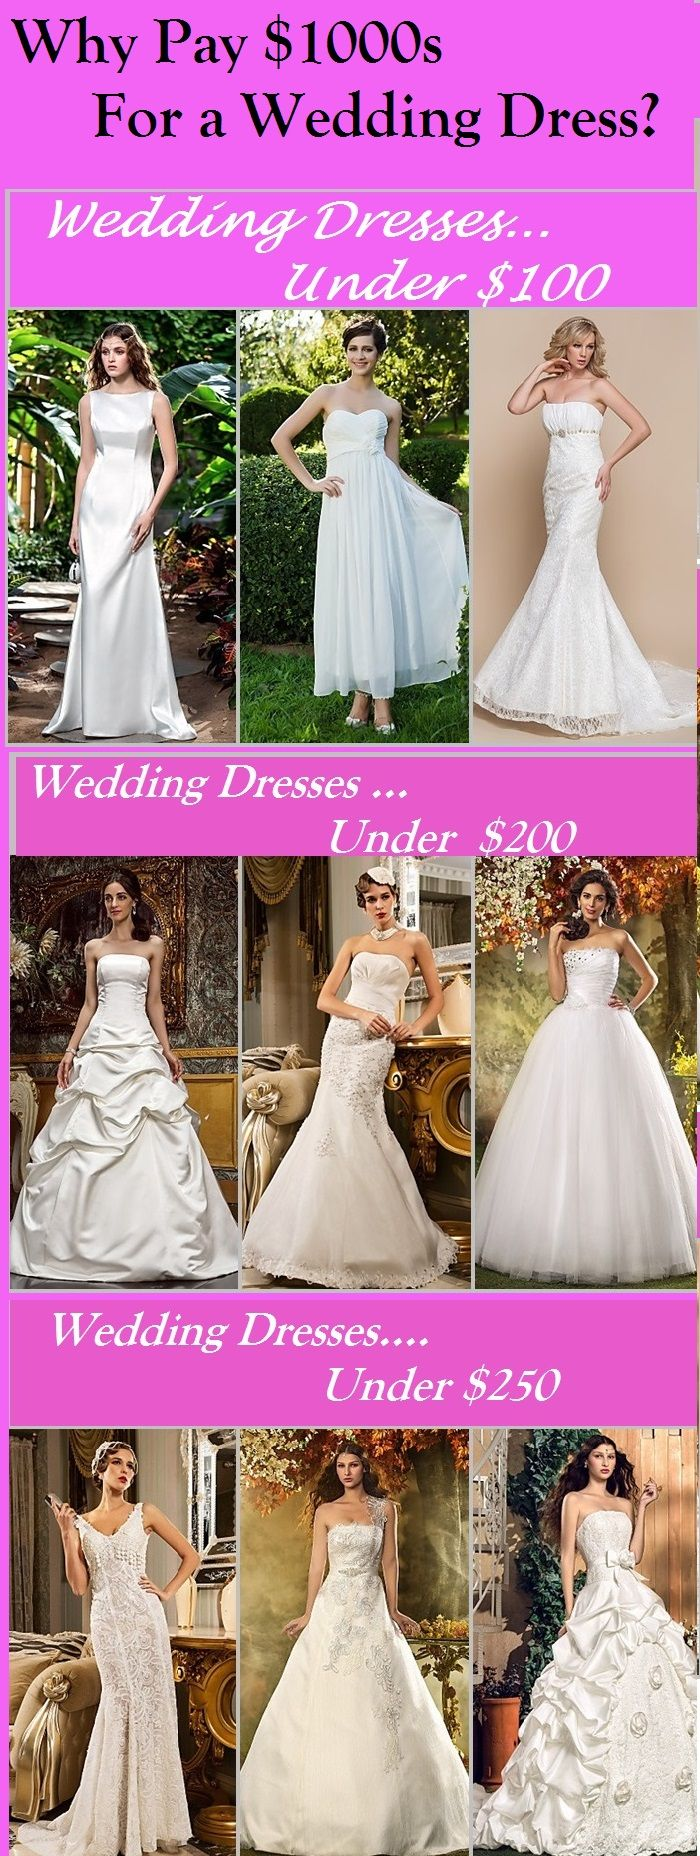 Wedding Dresses Under 250 What Did You Spend On Your Dress Far Less Planning A We Have Some Exclusive Coupons For